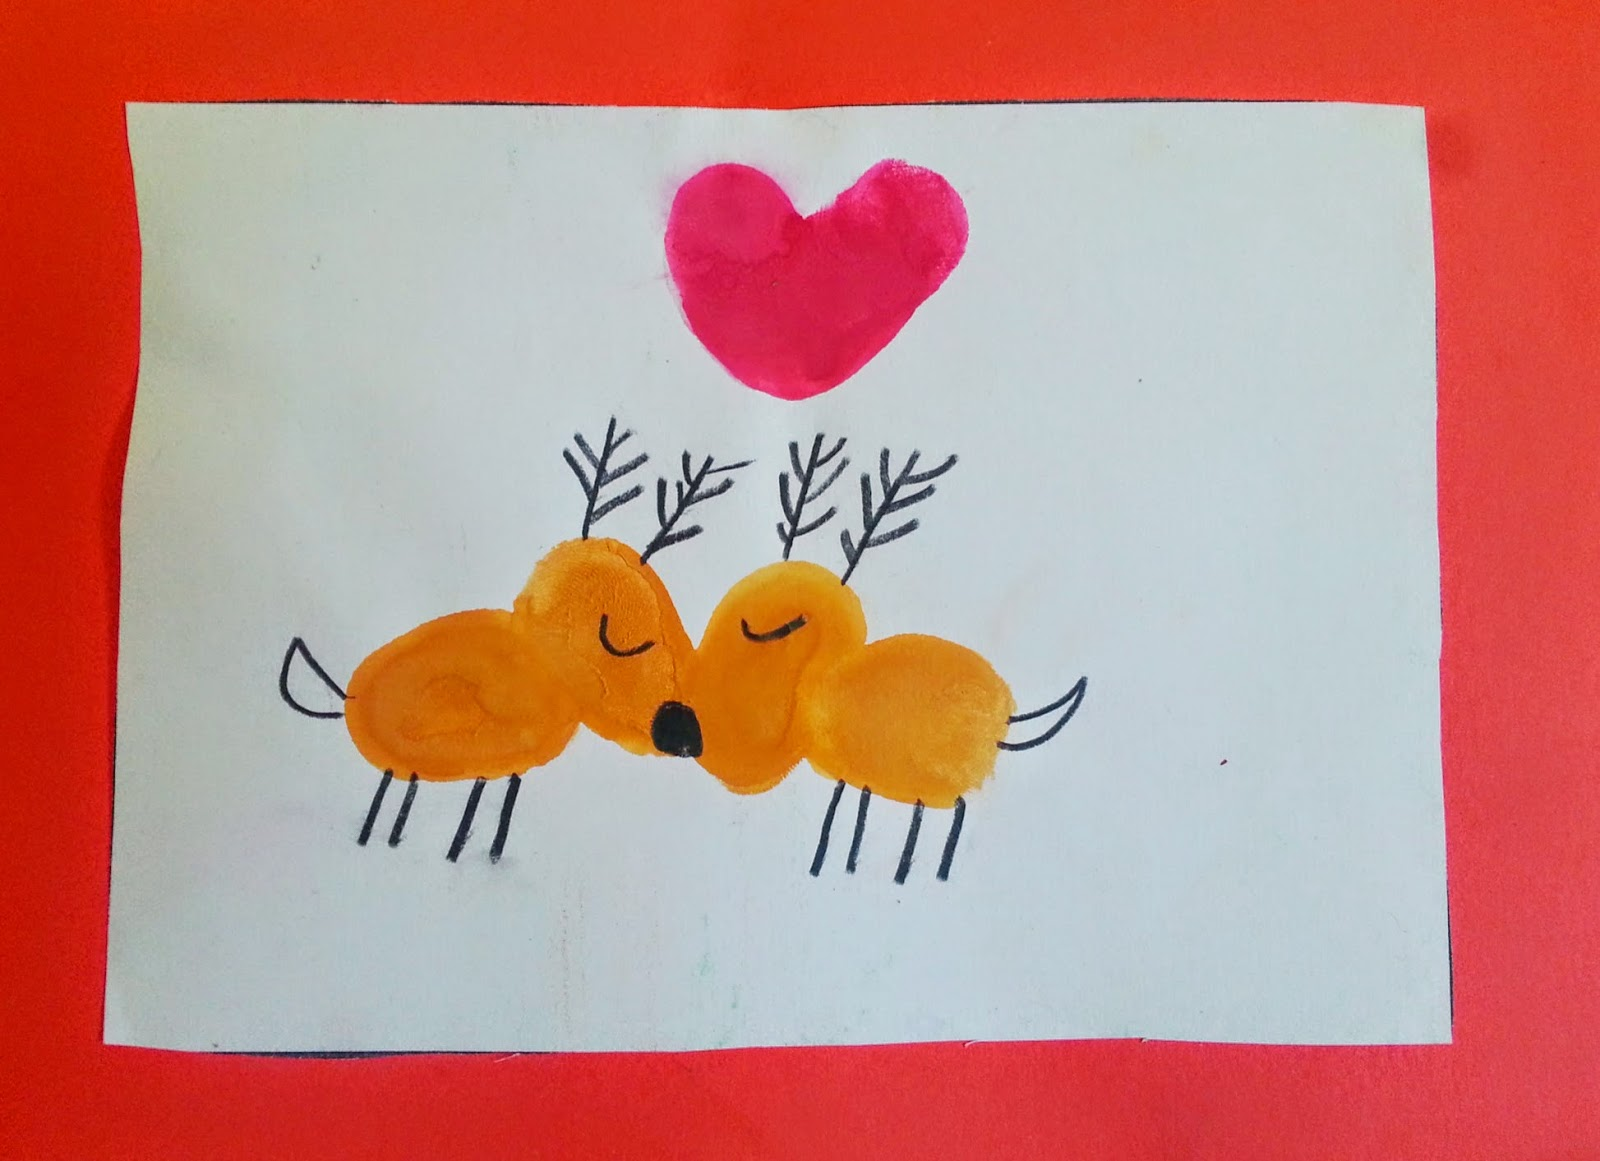 Picture of two sweet reindeer kissing